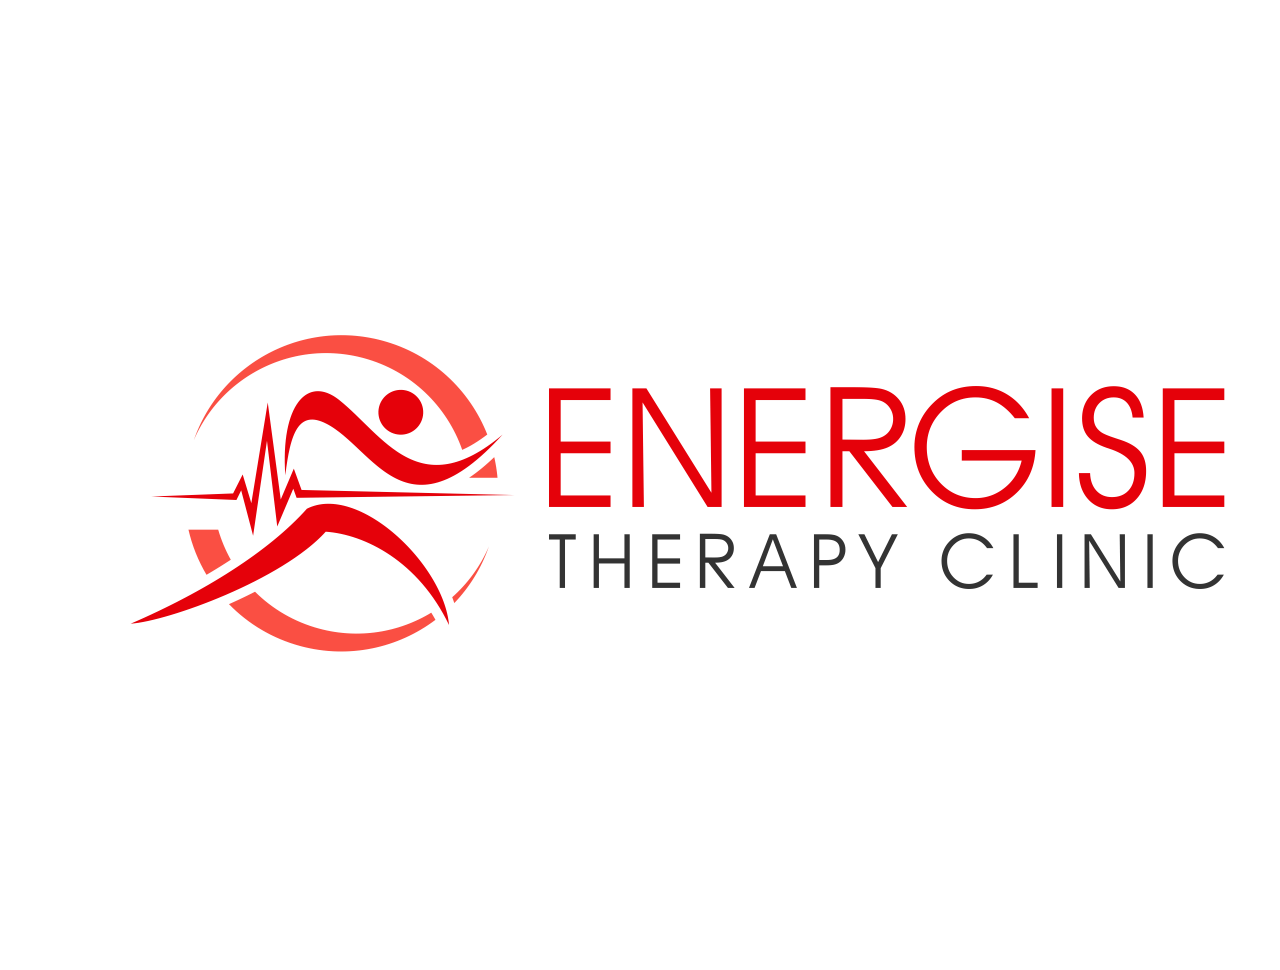 Energise Therapy Clinic – Physiotherapy Acupuncture and Massage